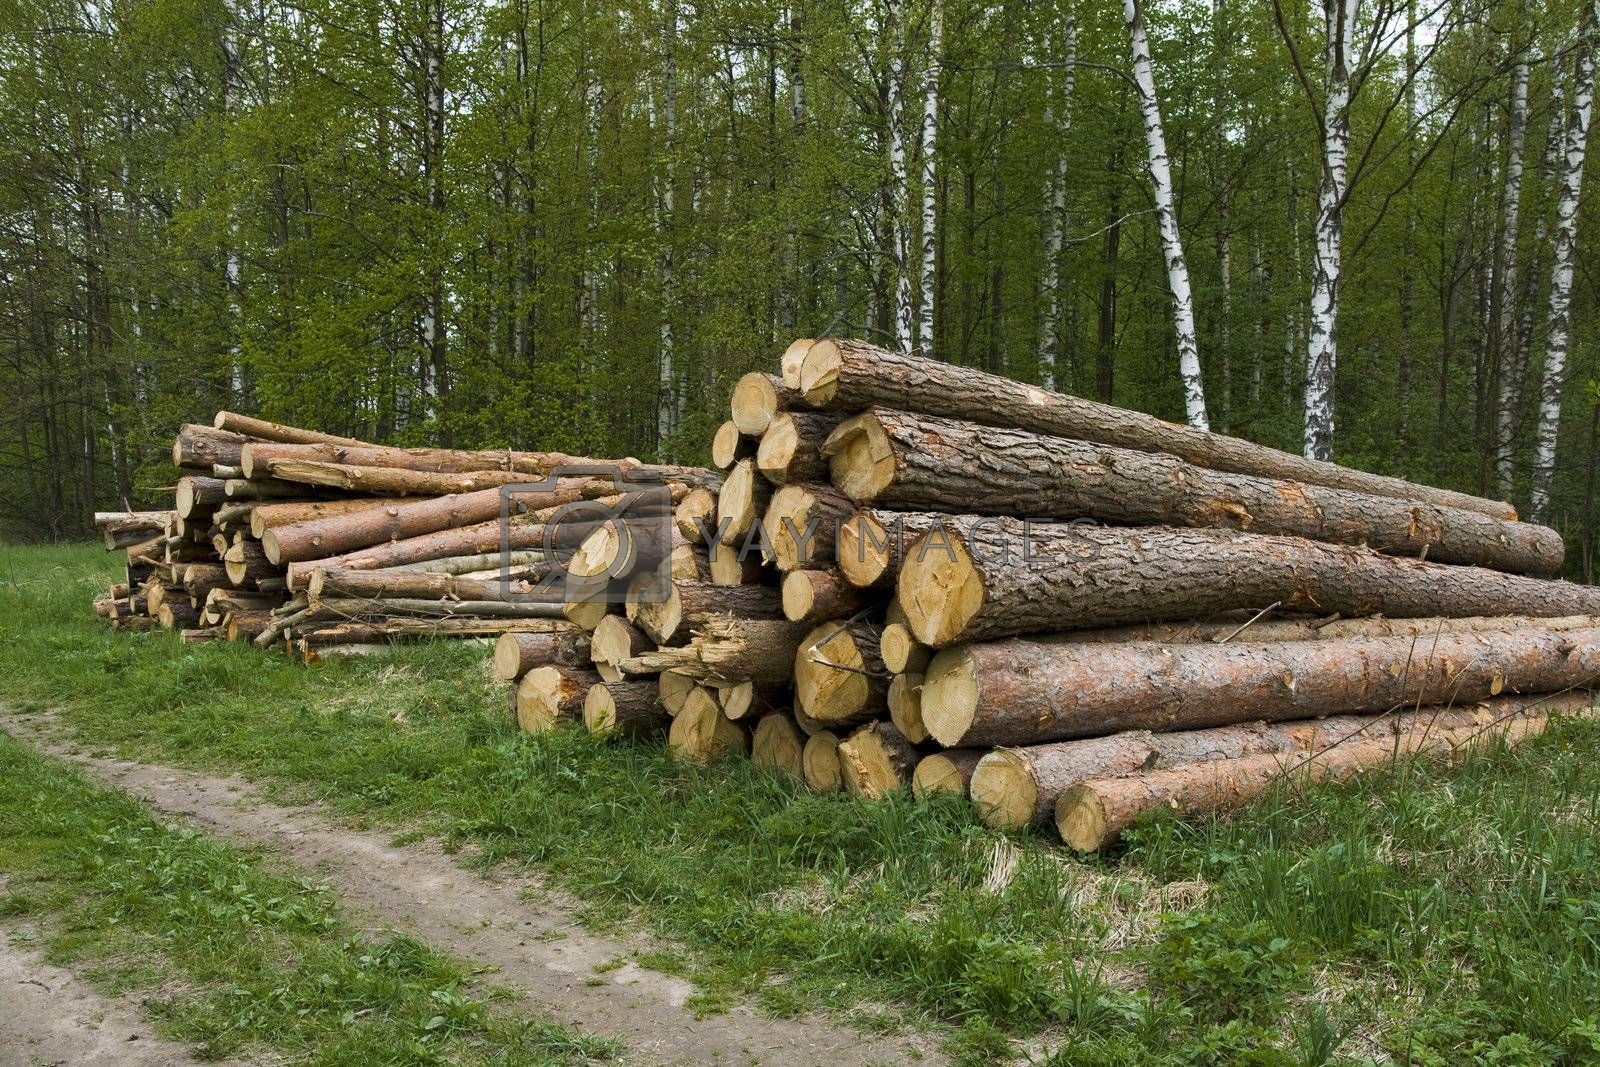 Pine logs for construction of the house.